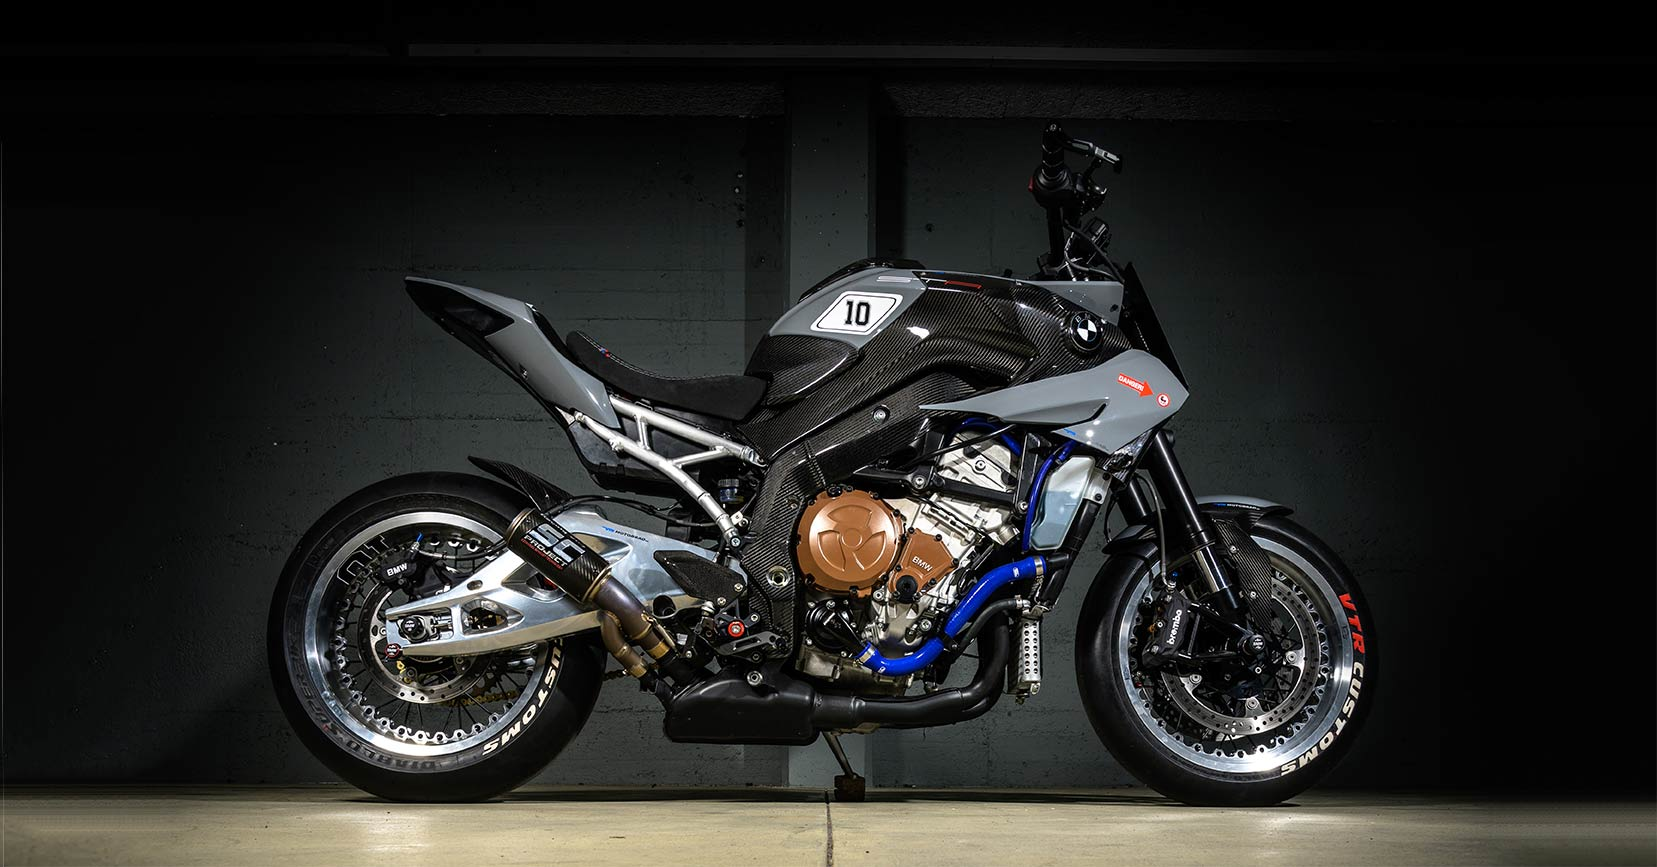 Two by Four: A pair of wild BMW S1000 customs from VTR